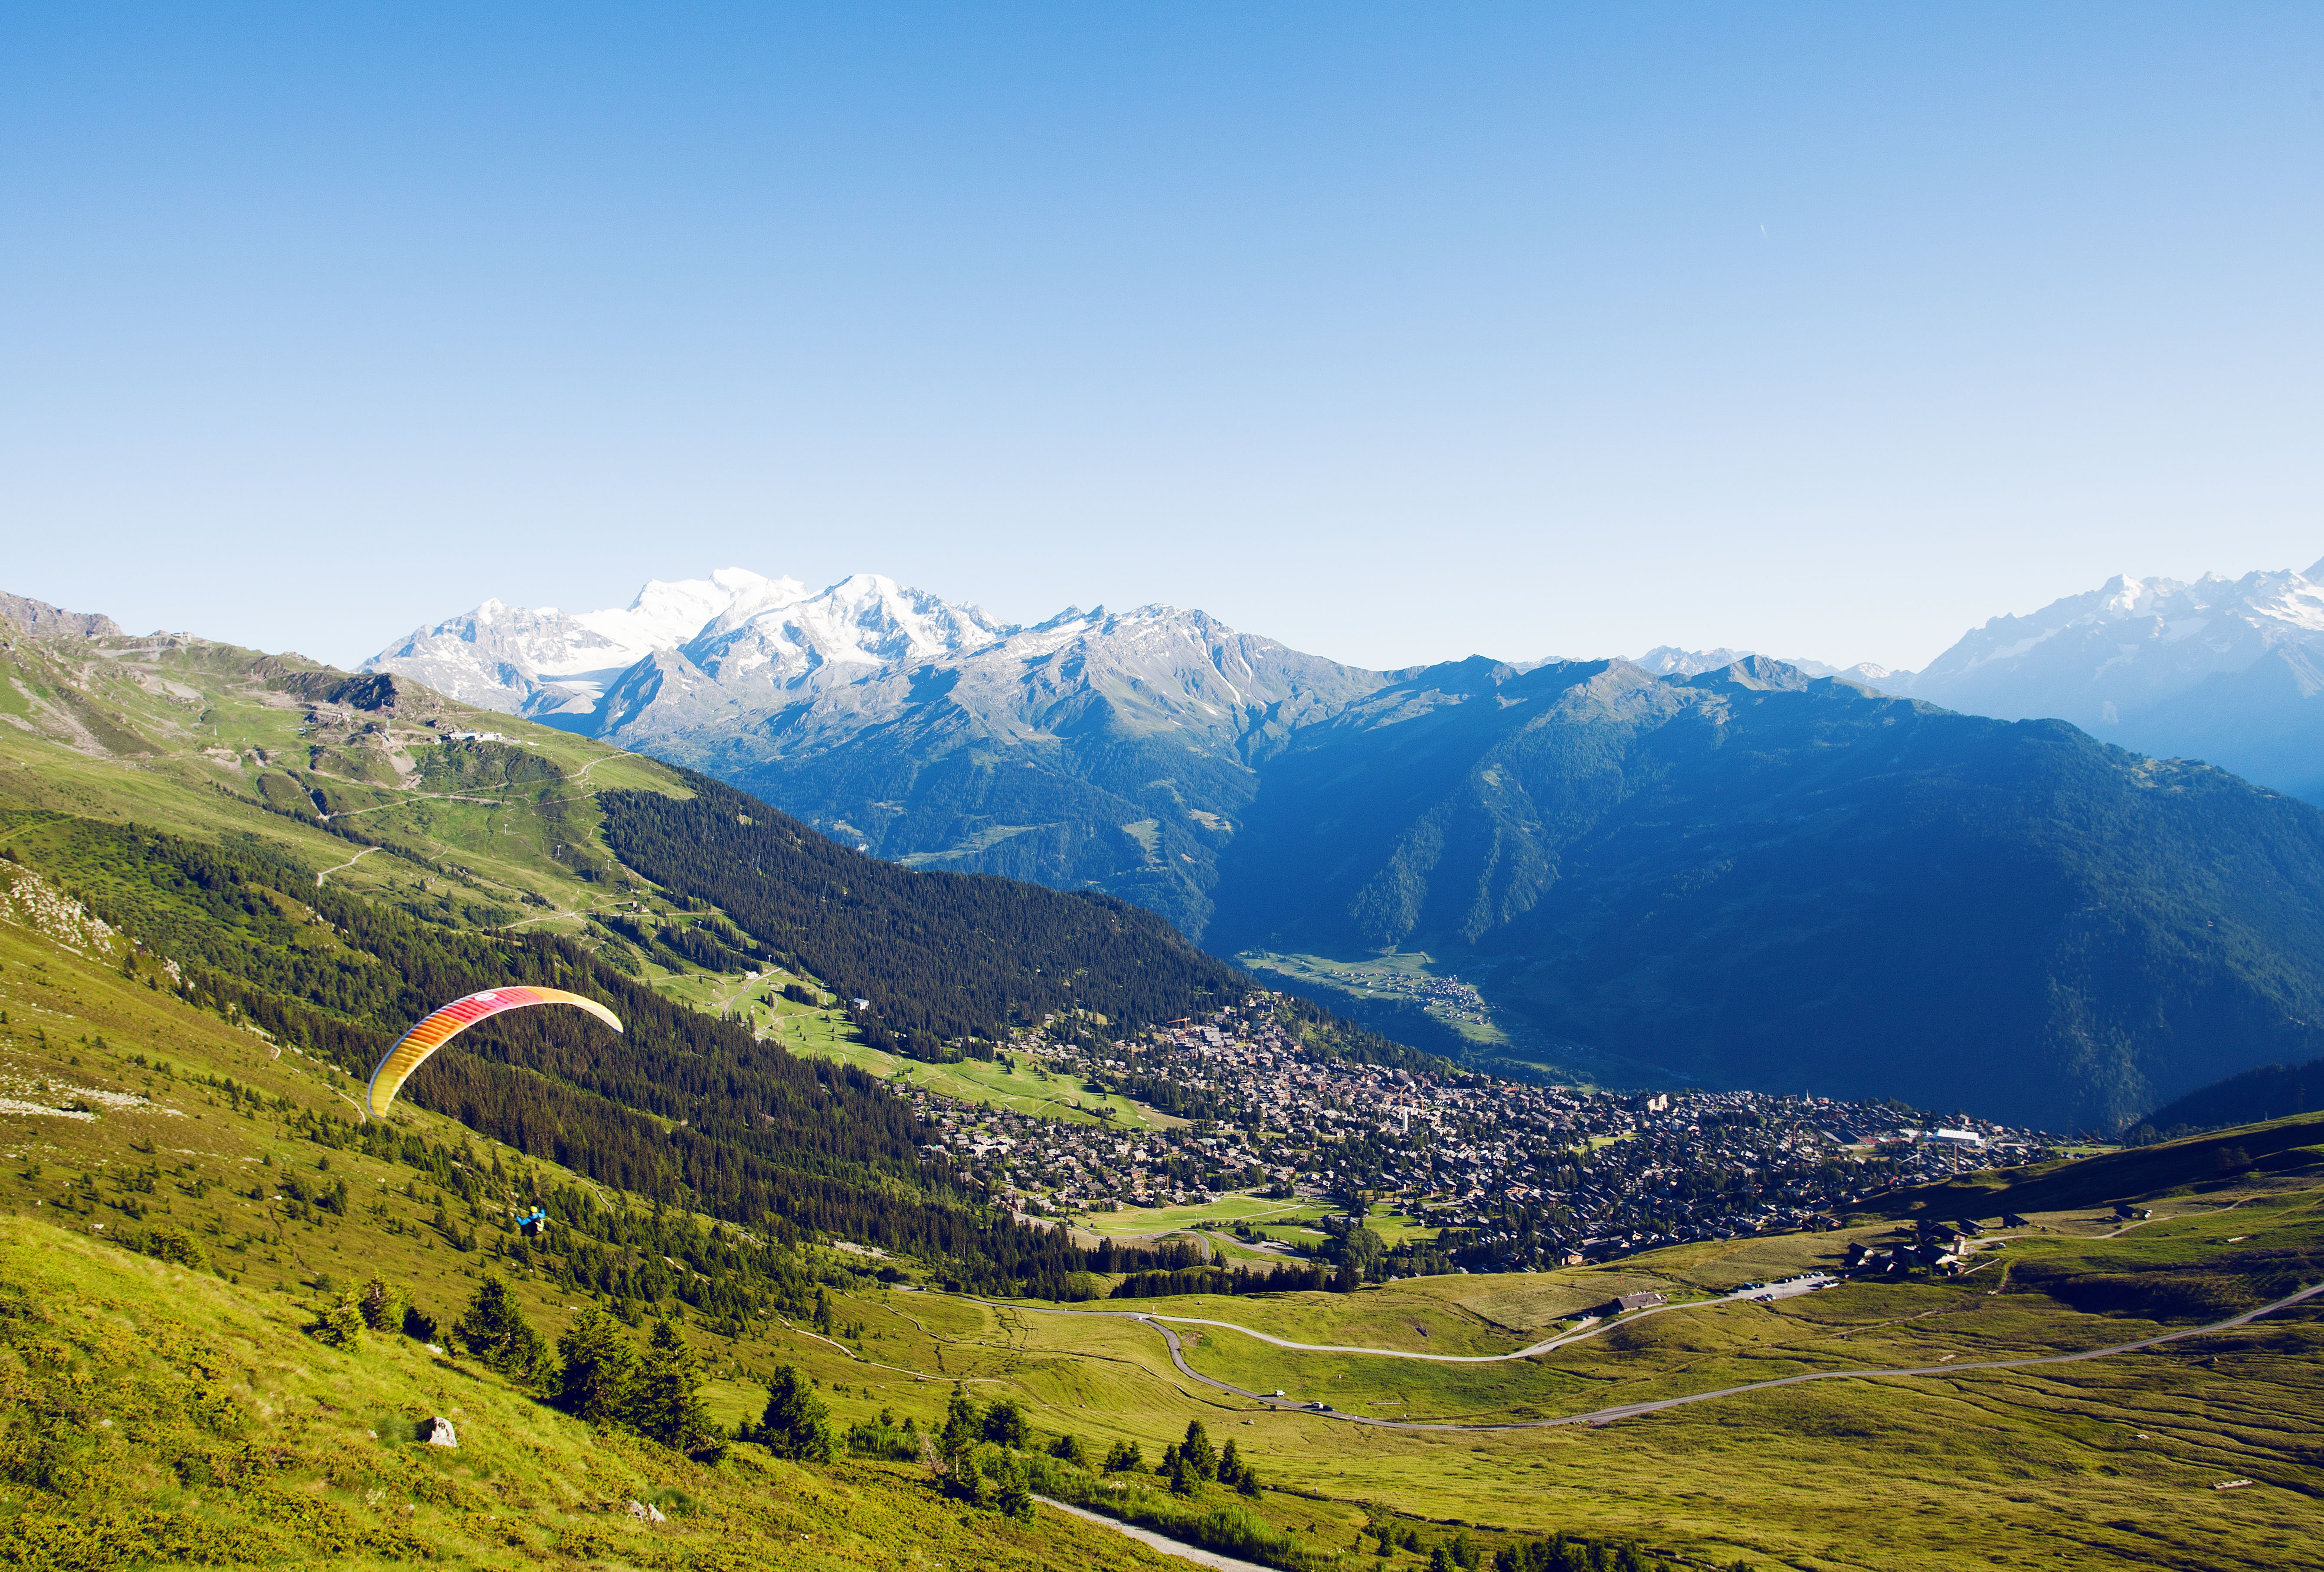 From the famous mountain resort of Verbier to the Vallée d'Illiez, this eighth stage takes you on a voyage of discovery, from the high mountain lake of Champex to the peaceful roads through the Rhone Valley along the banks of the Rhone River.